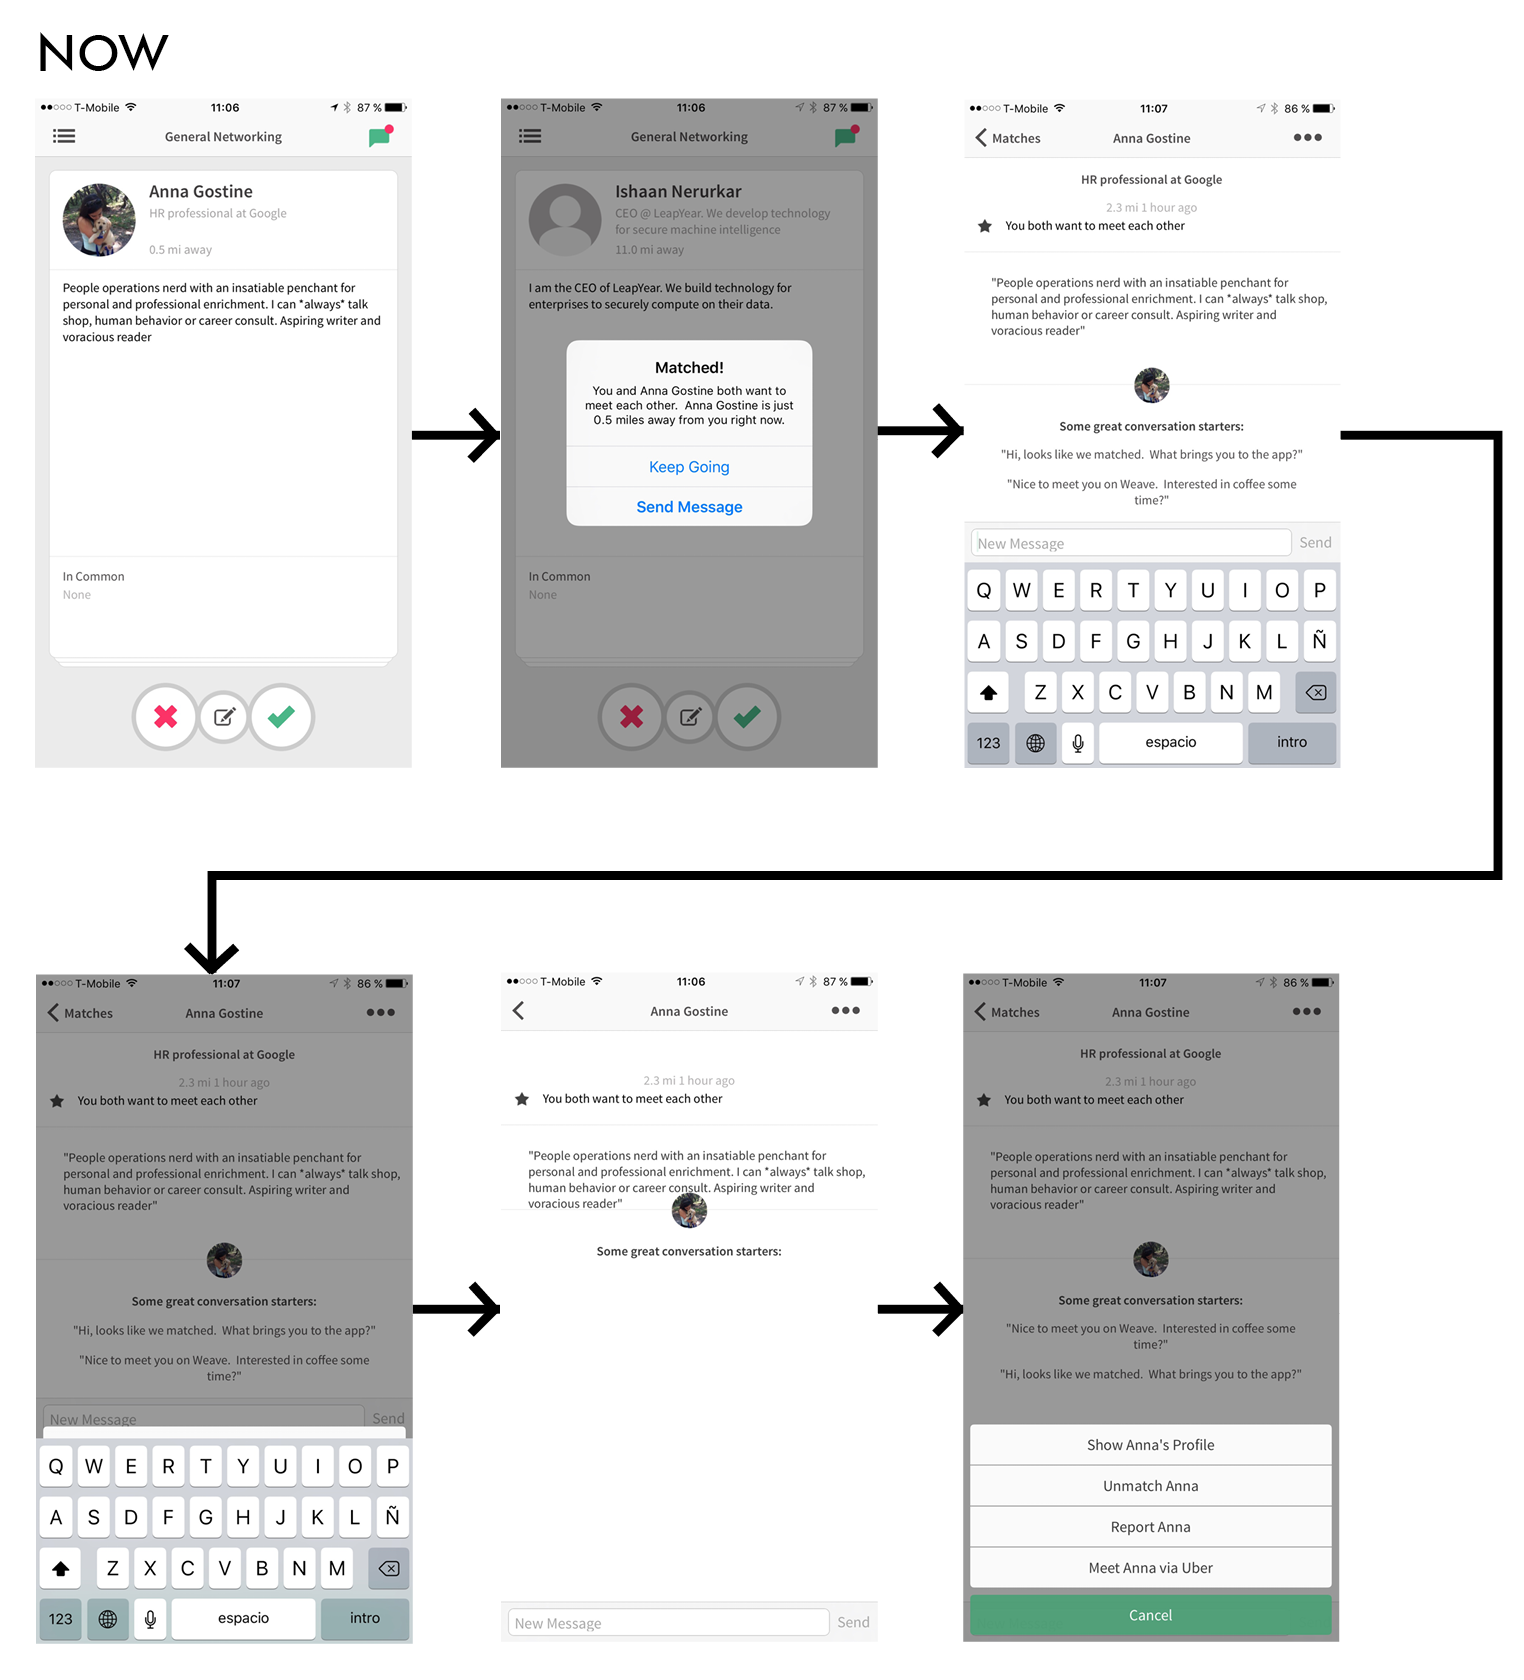 These are the wireframes for starting a conversation in the current Weave App.